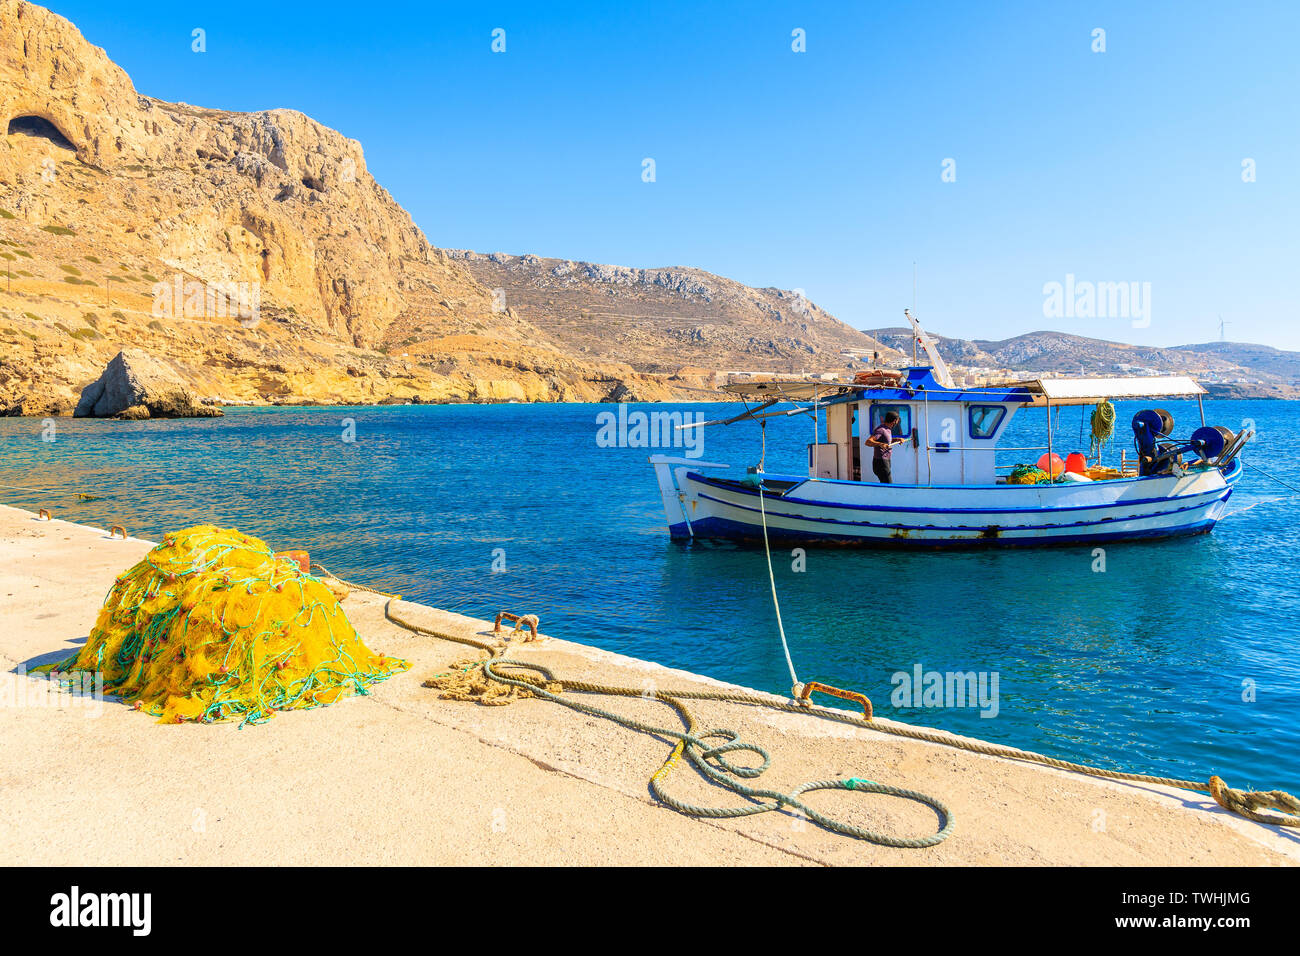 Fishing boat in picturesque Finiki port with mountains in background, Karpathos island, Greece Stock Photo